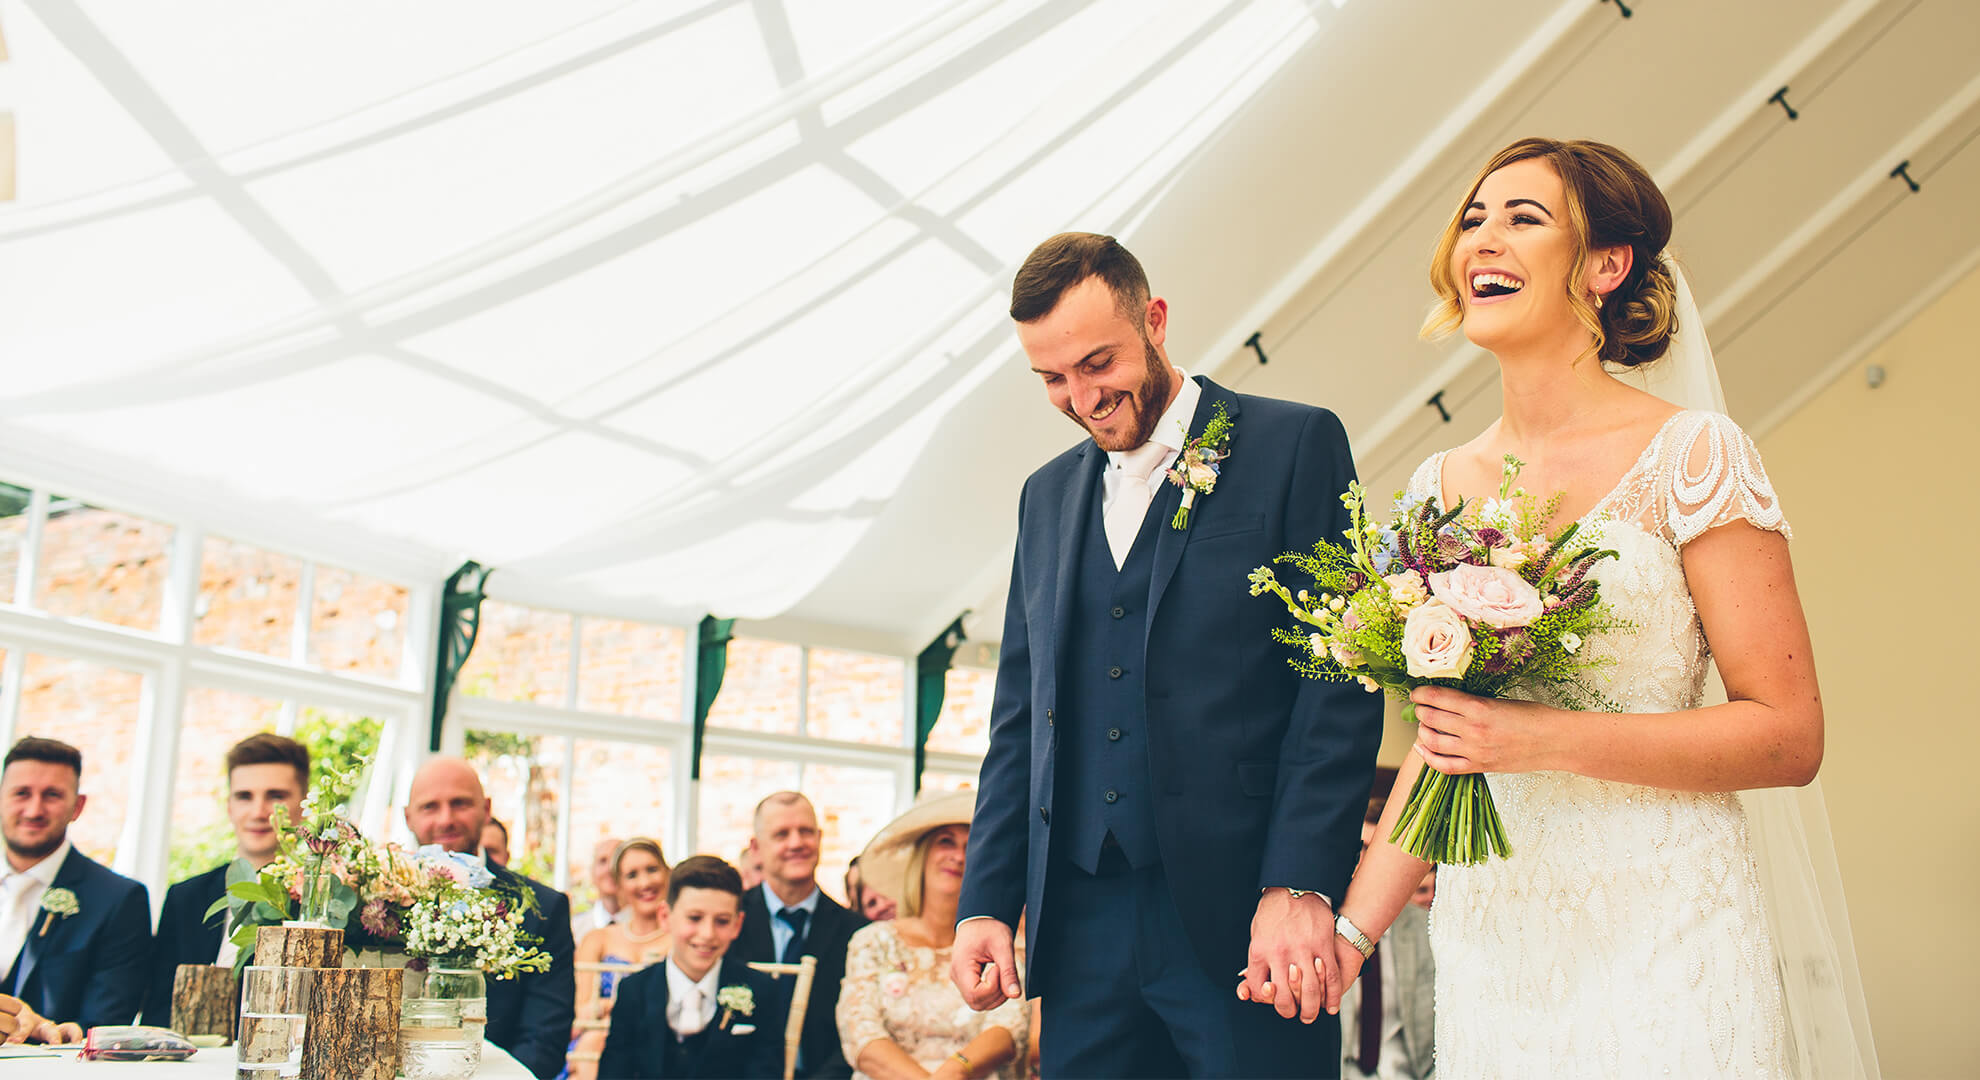 Viewing a wedding venue during Covid-19 | Combermere Abbey